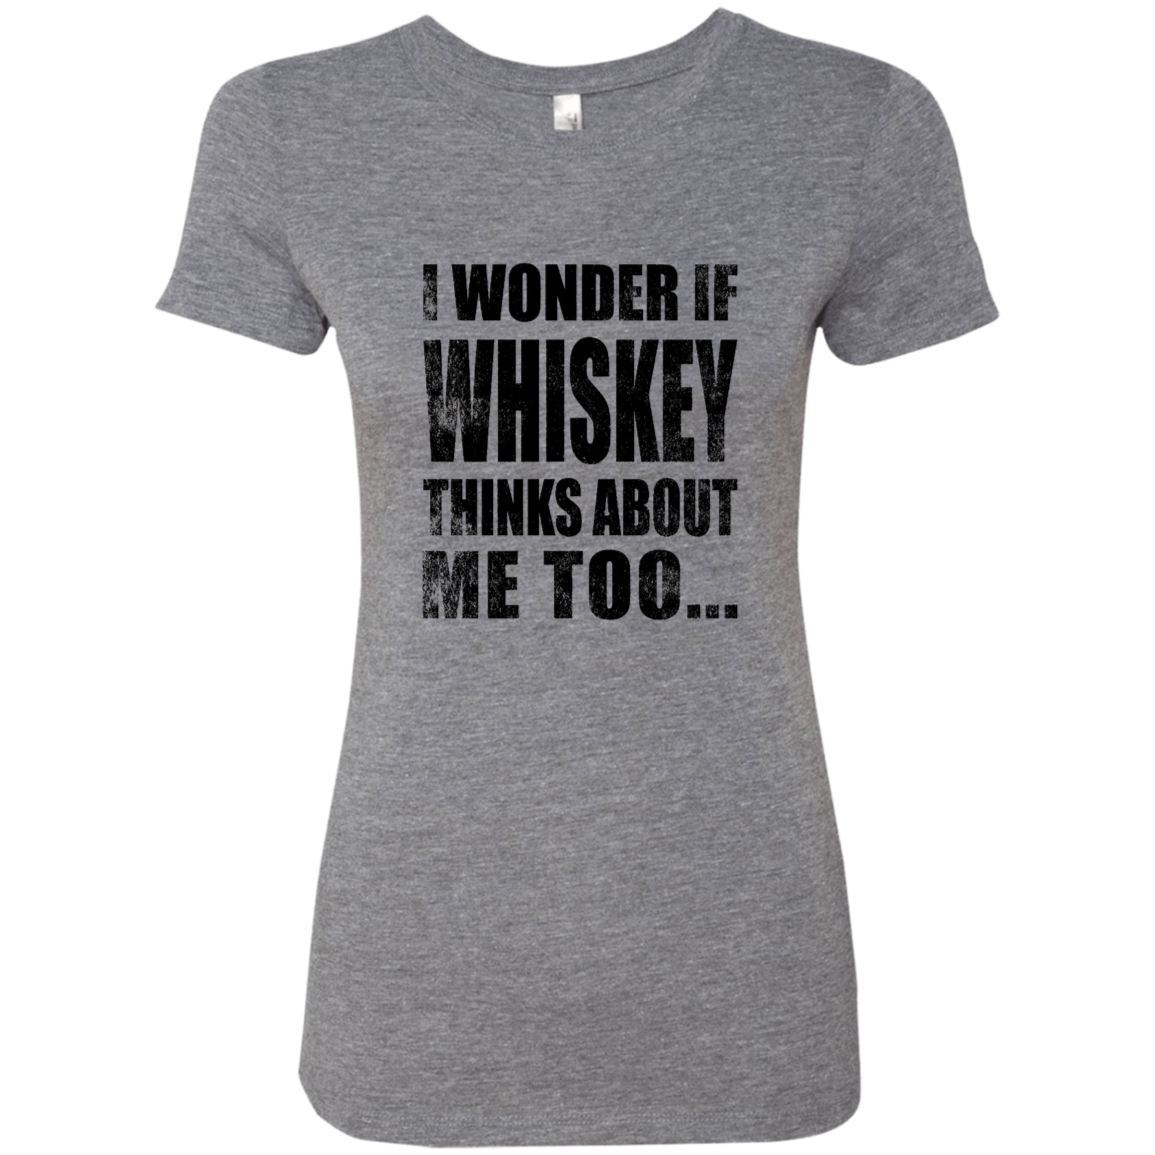 I WonderIf Whiskey Thinks About Me Too Women's Classic Tee